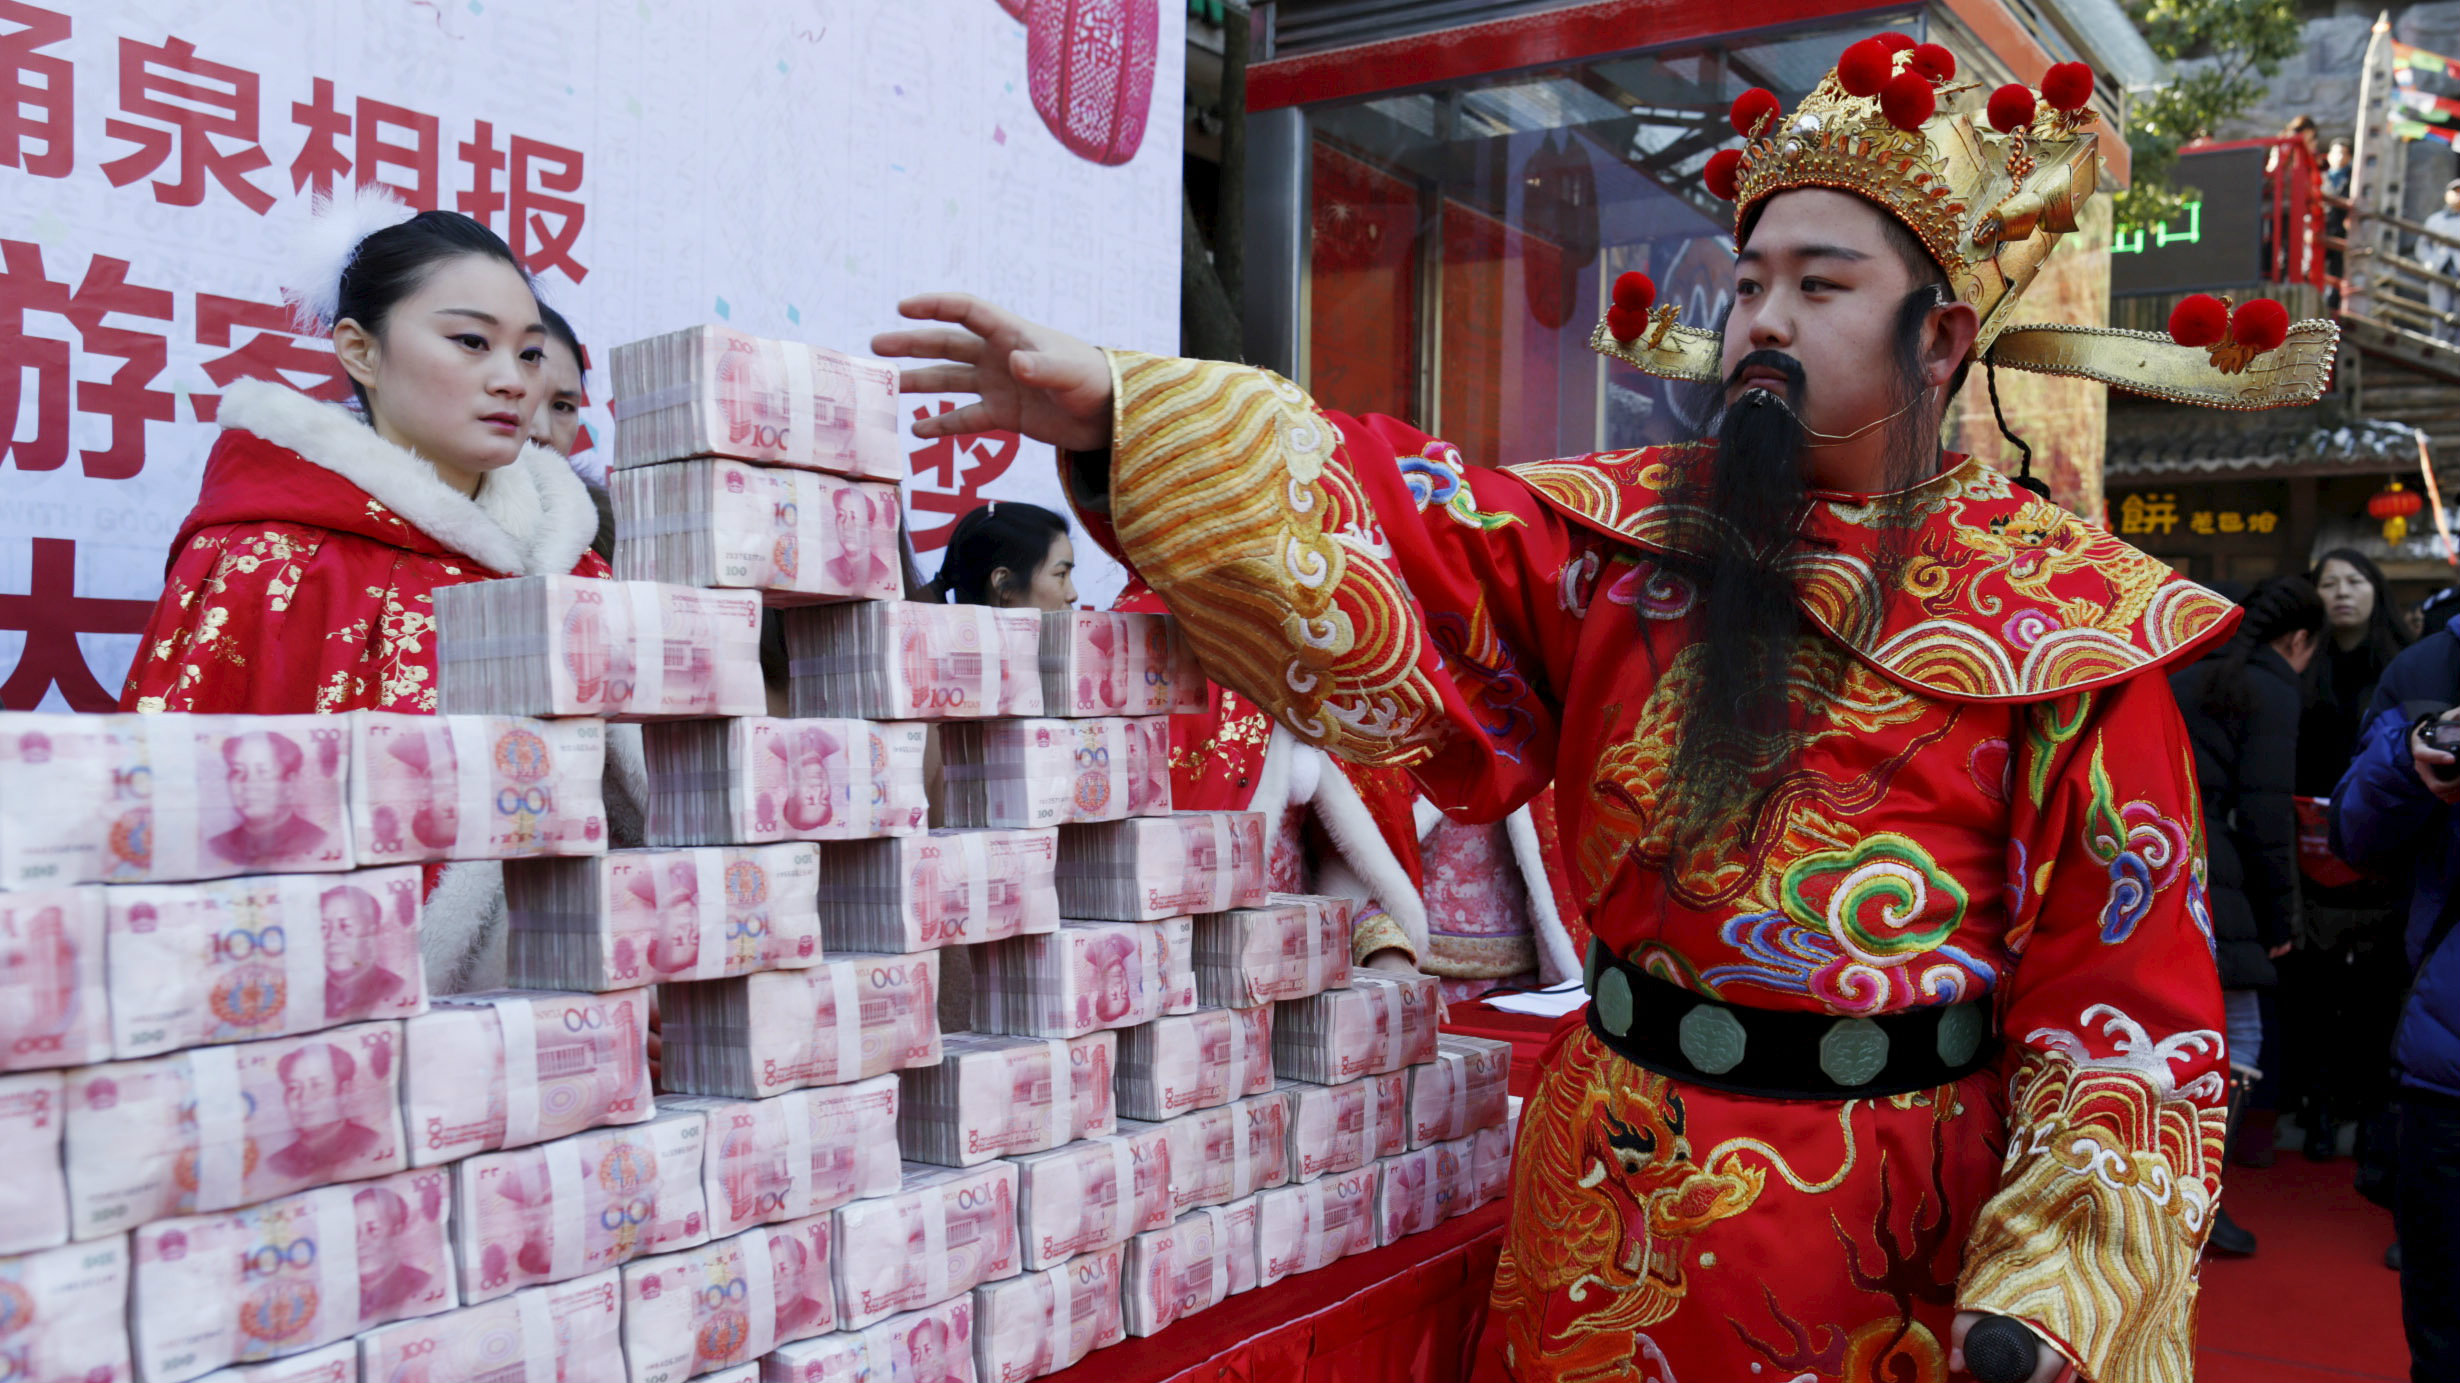 A man dressed as Chinese God of Fortune tries to reach a bundle of 100-yuan banknotes during an event held to celebrate the upcoming Spring Festival, at a park in Hangzhou, Zhejiang province, China January 26, 2016. The event offered 5 million yuan ($760,000) for 10 visitors to snatch inside a glass cage with an air blower on. The visitors were allowed to take away all the money they could grab with their hands within one minute. One of the visitors won 18,300 yuan ($2,800) from the game, according to local media.